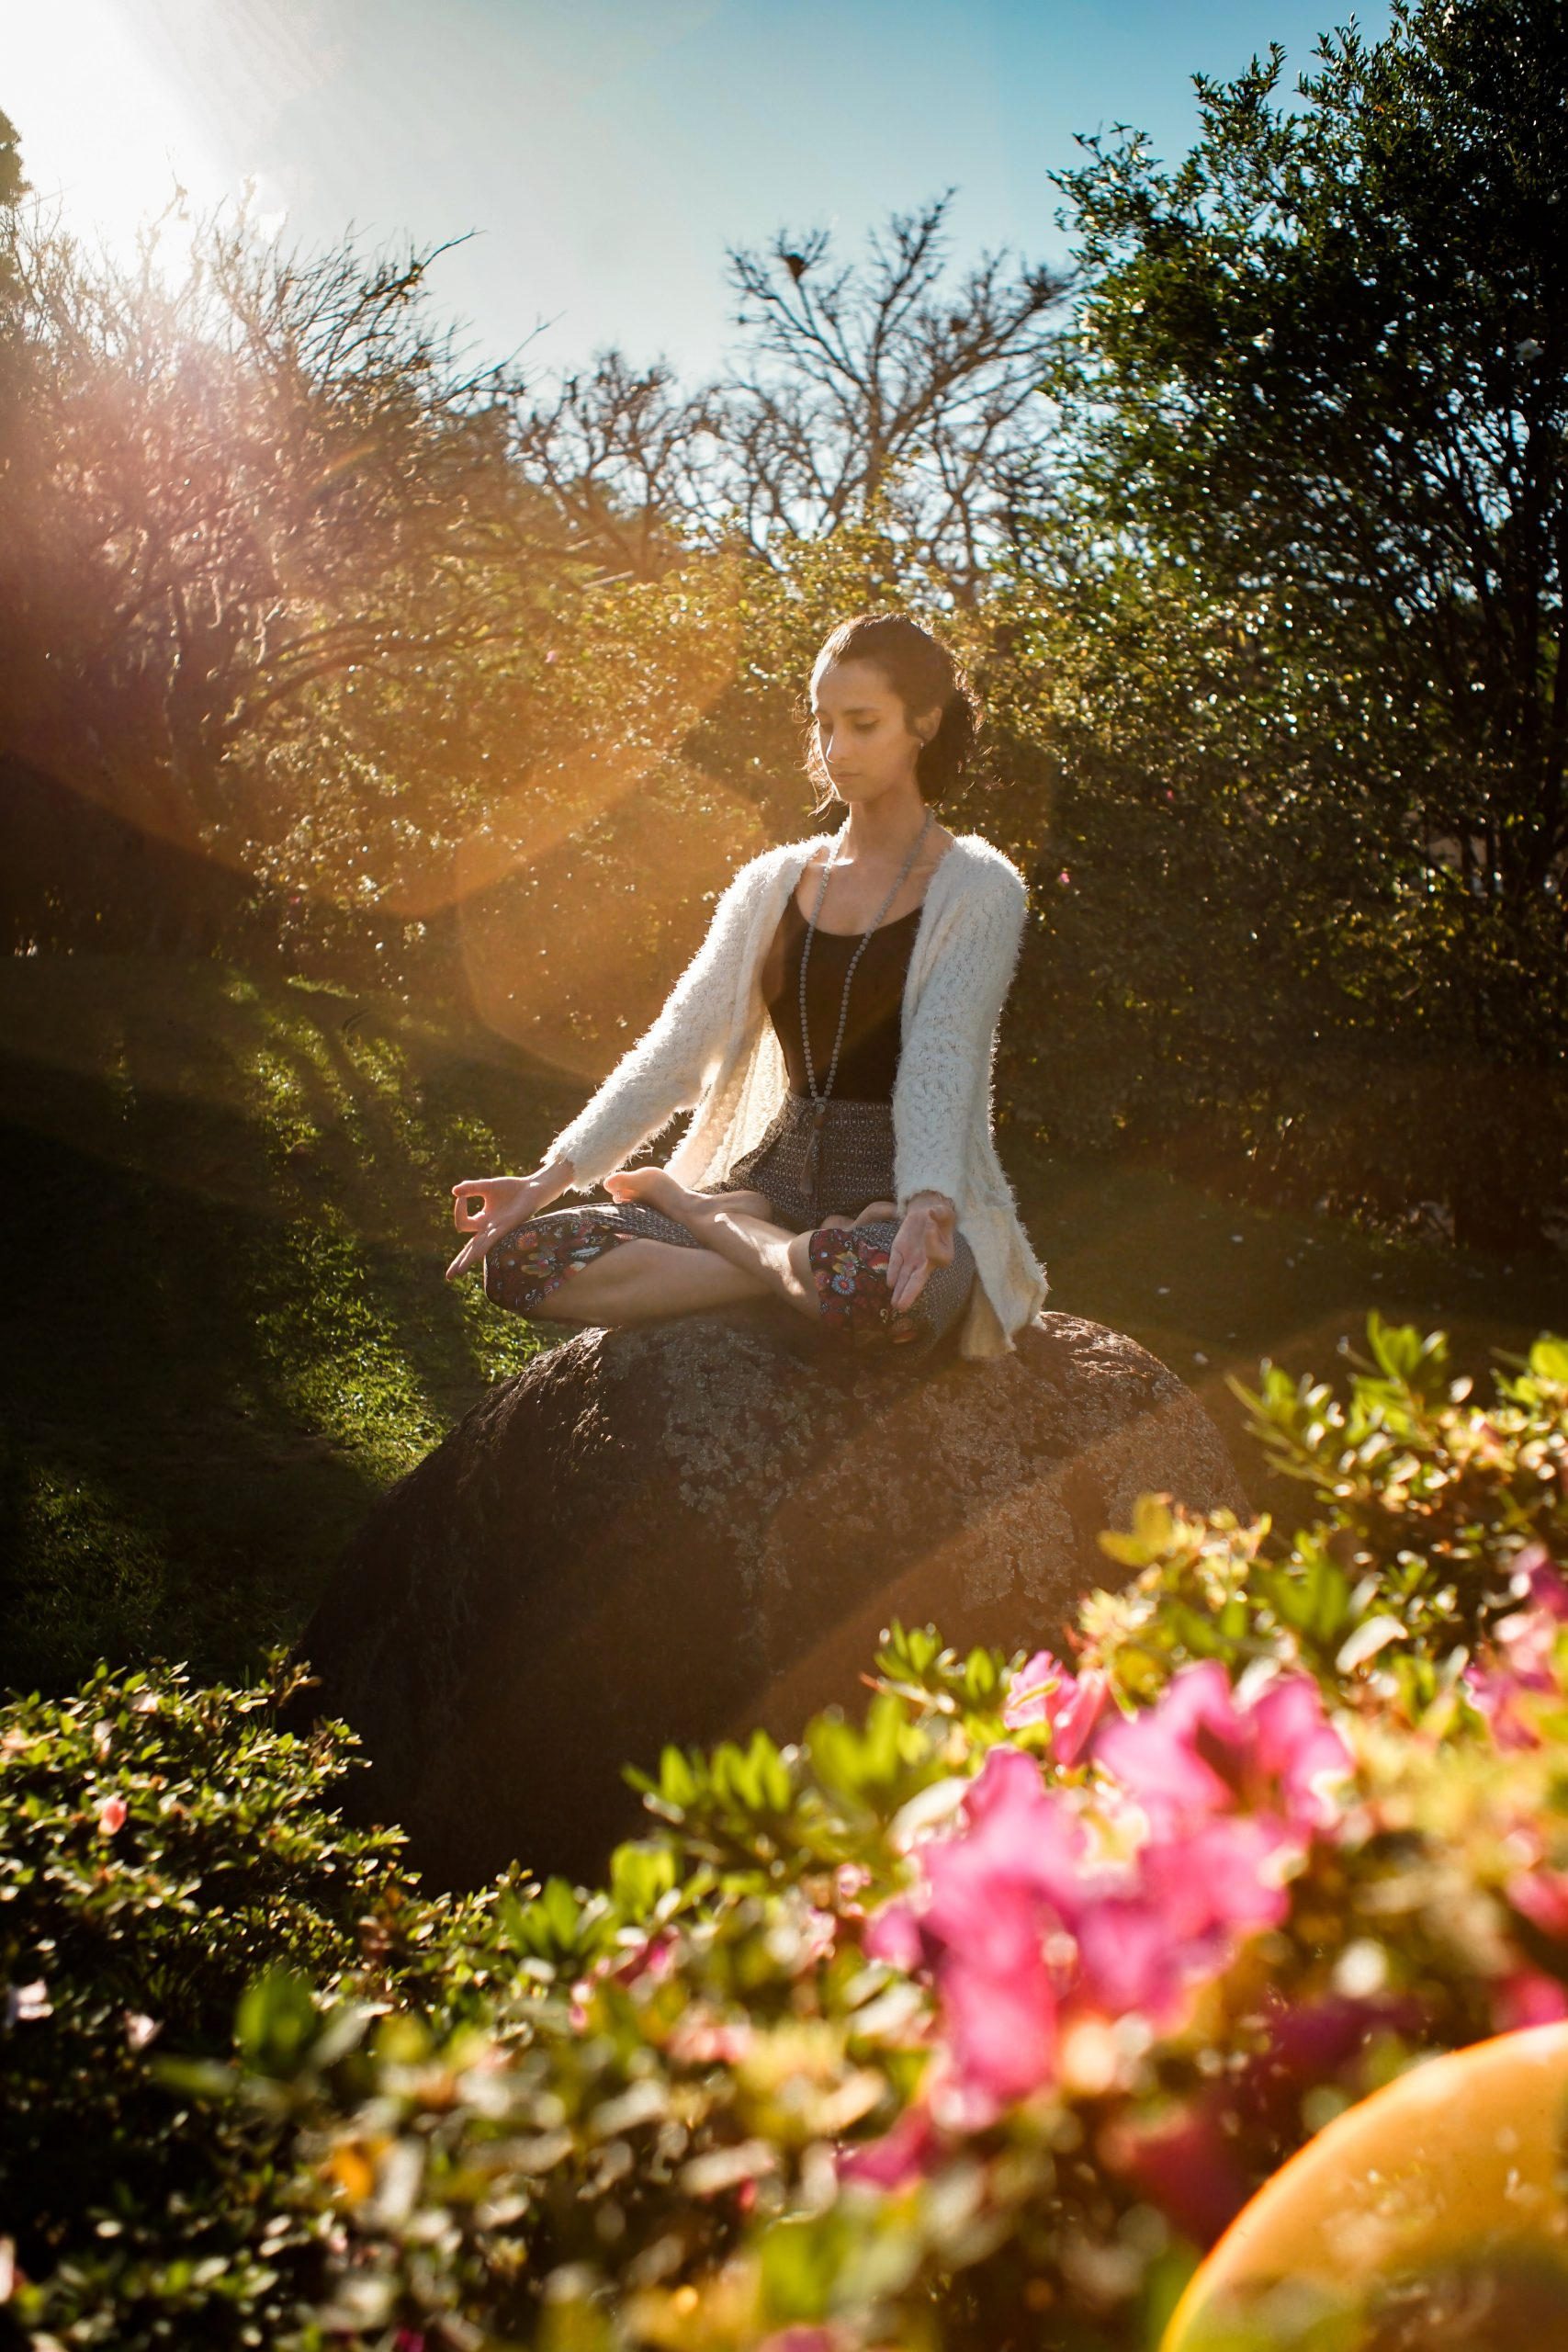 How To Promote A Greater Sense Of Peace & Calm In Your Daily Life Hope Zvara blog